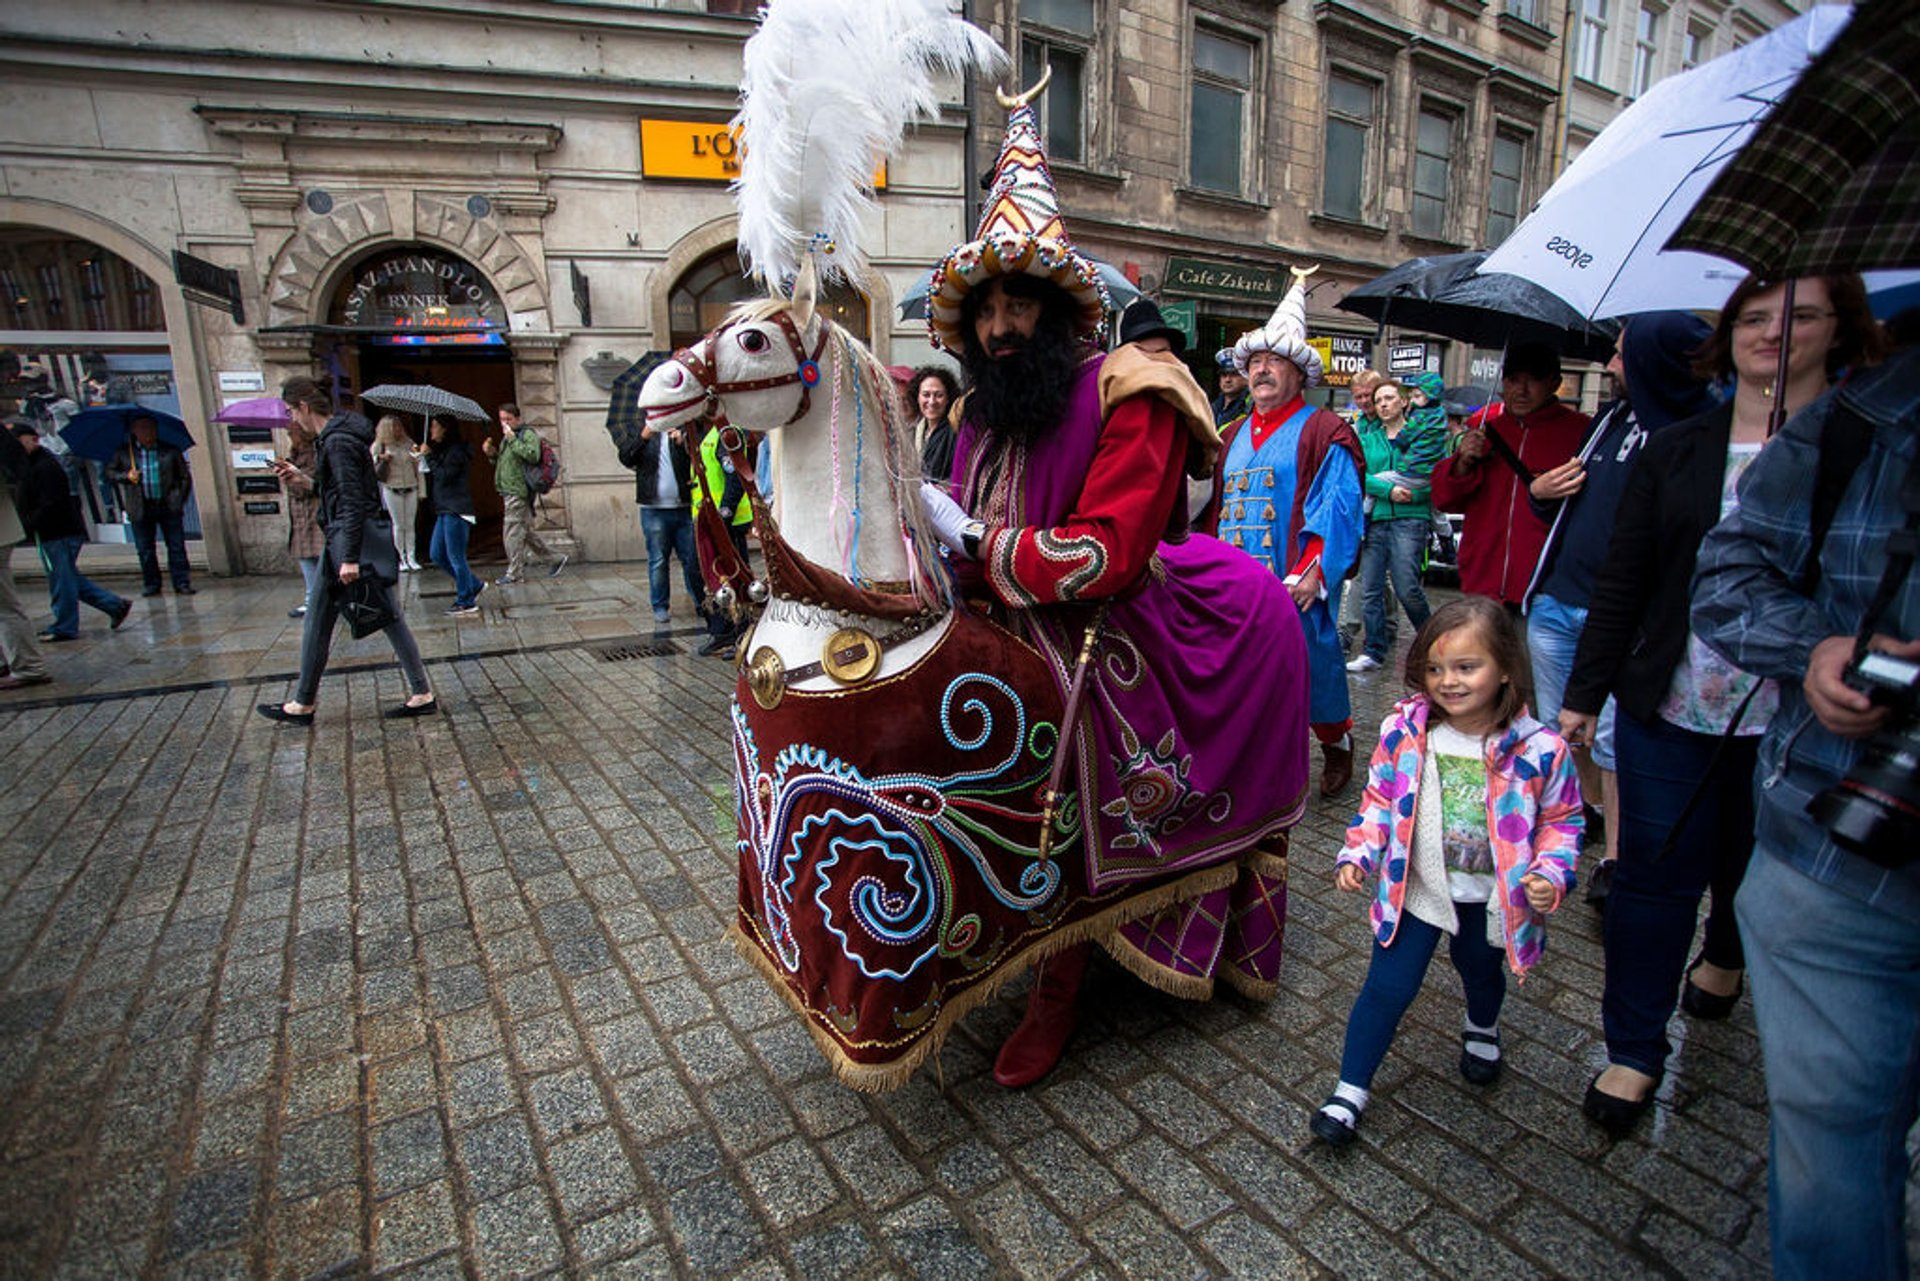 Lajkonik Parade in Krakow 2020 - Best Time